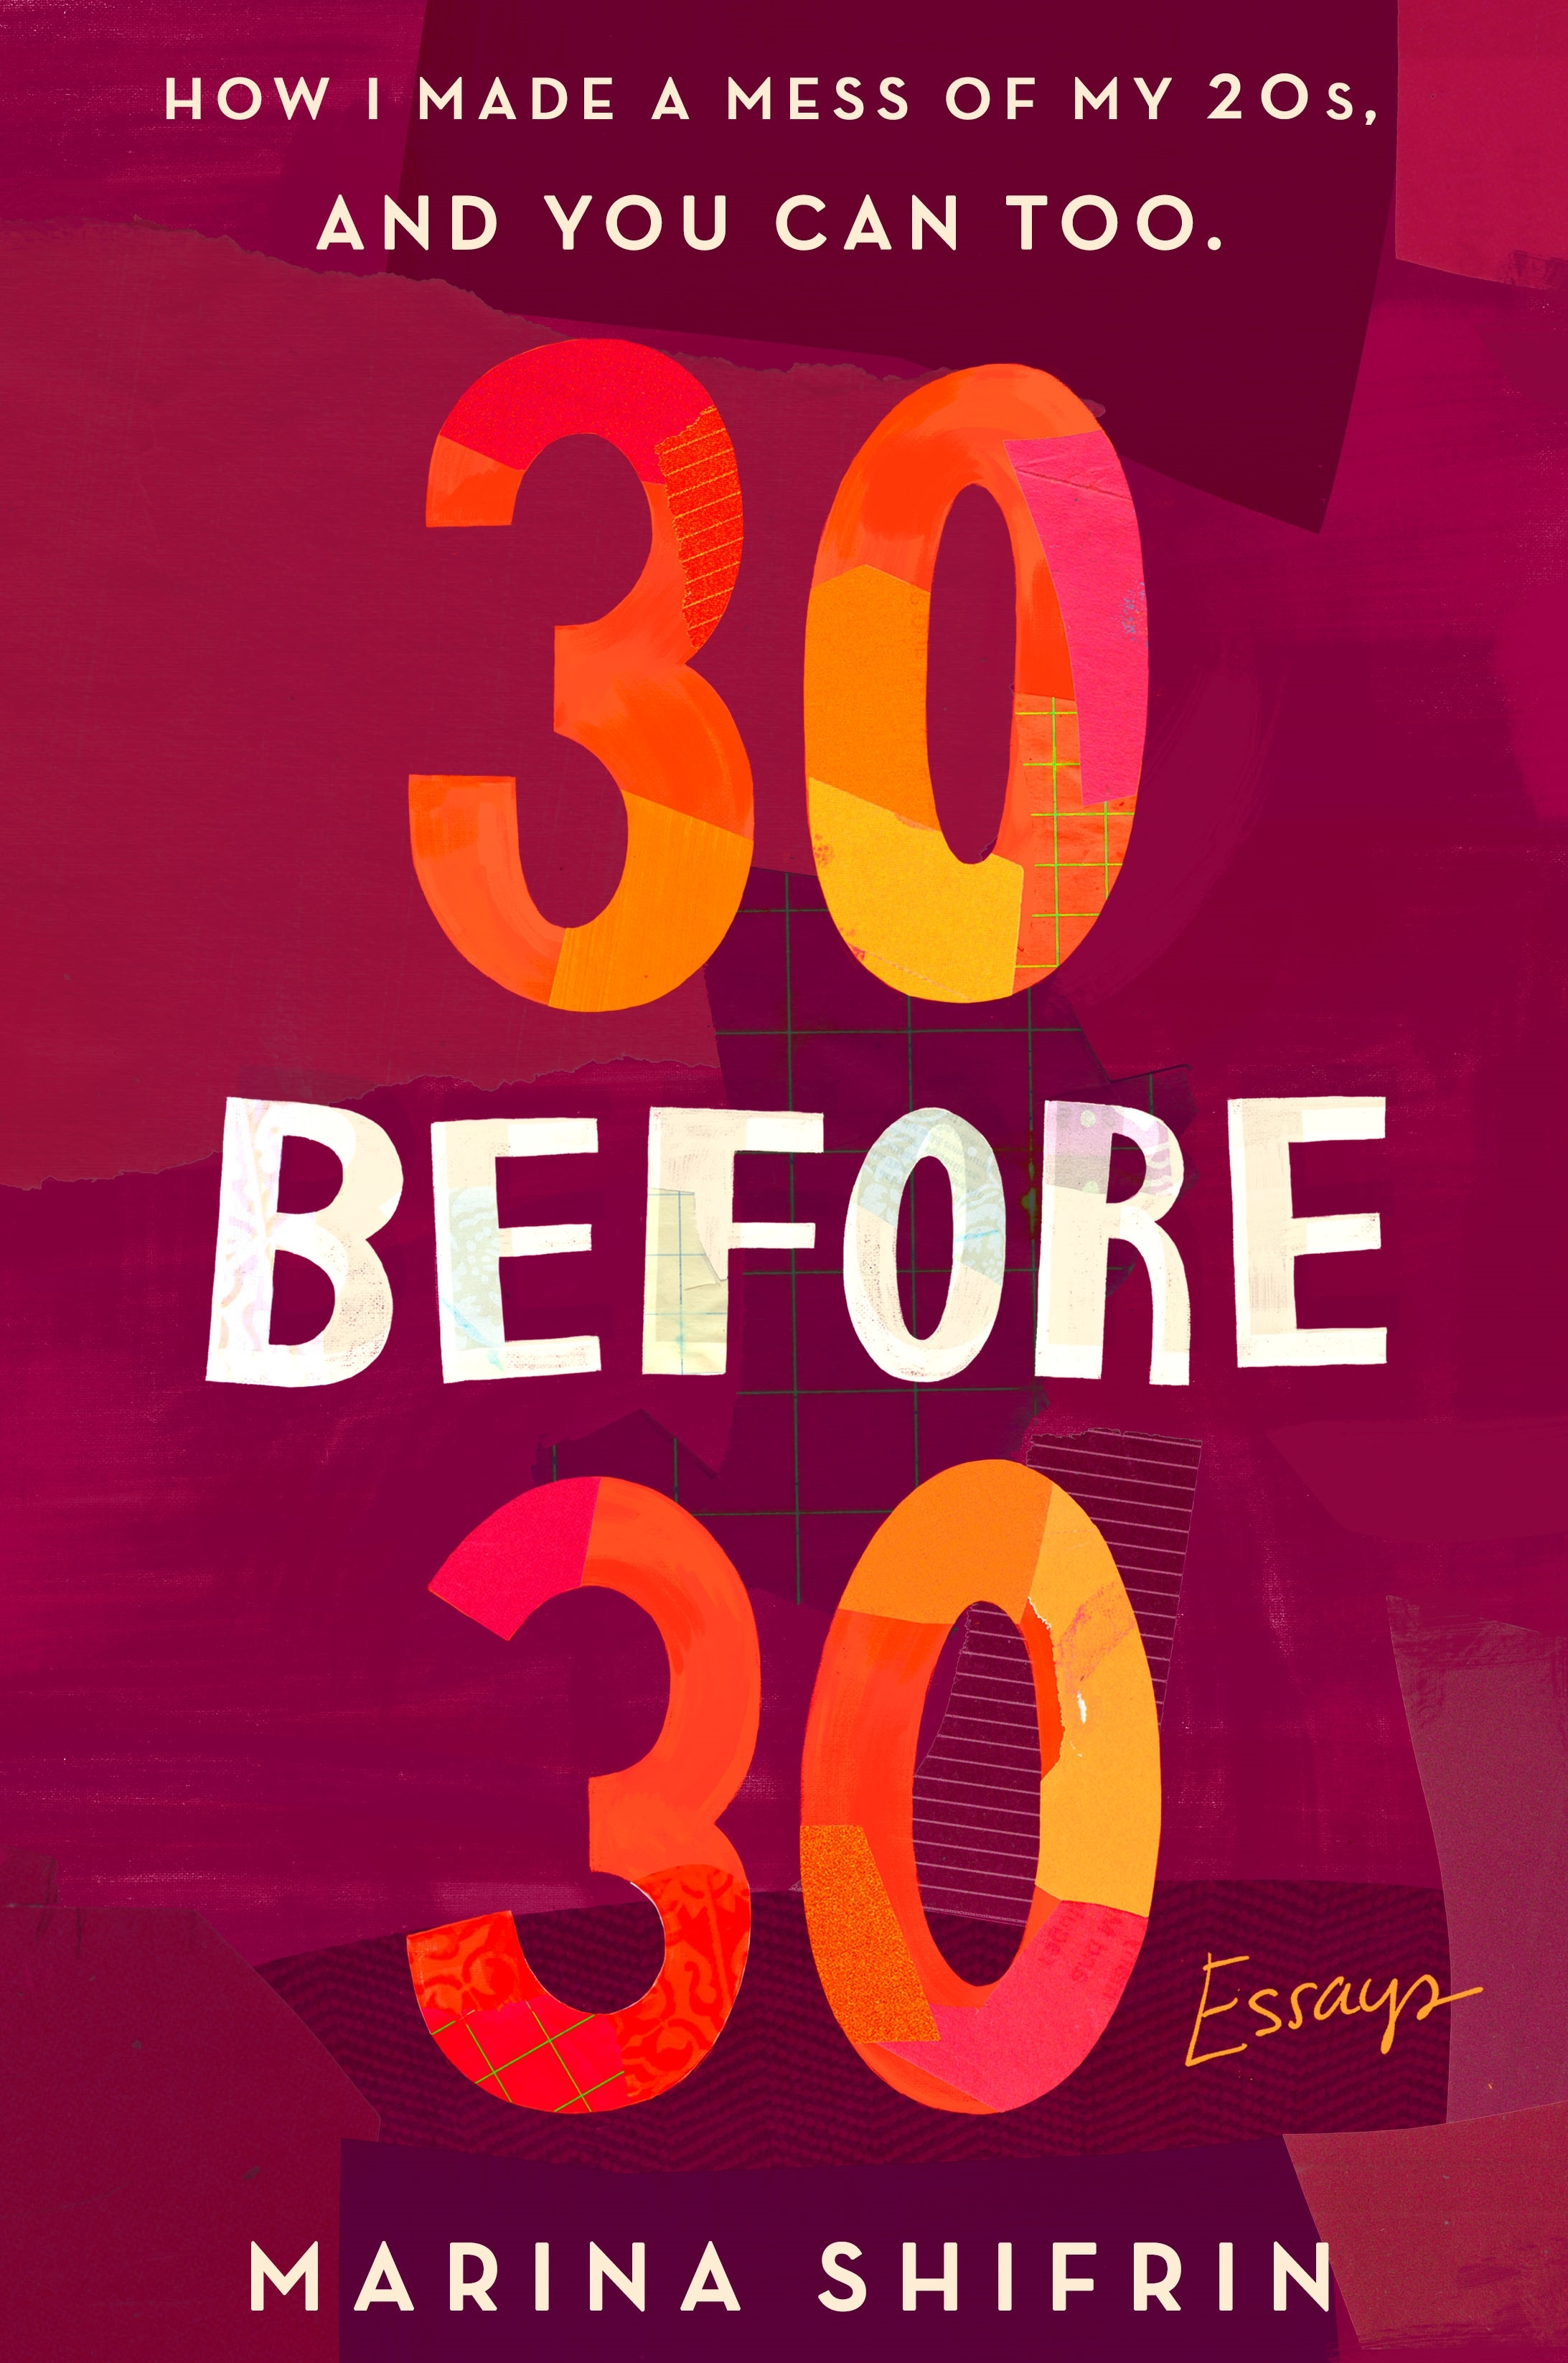 Book Launch: 30 Before 30: How I Made a Mess of My 20s, and You Can Too by Marina Shifrin